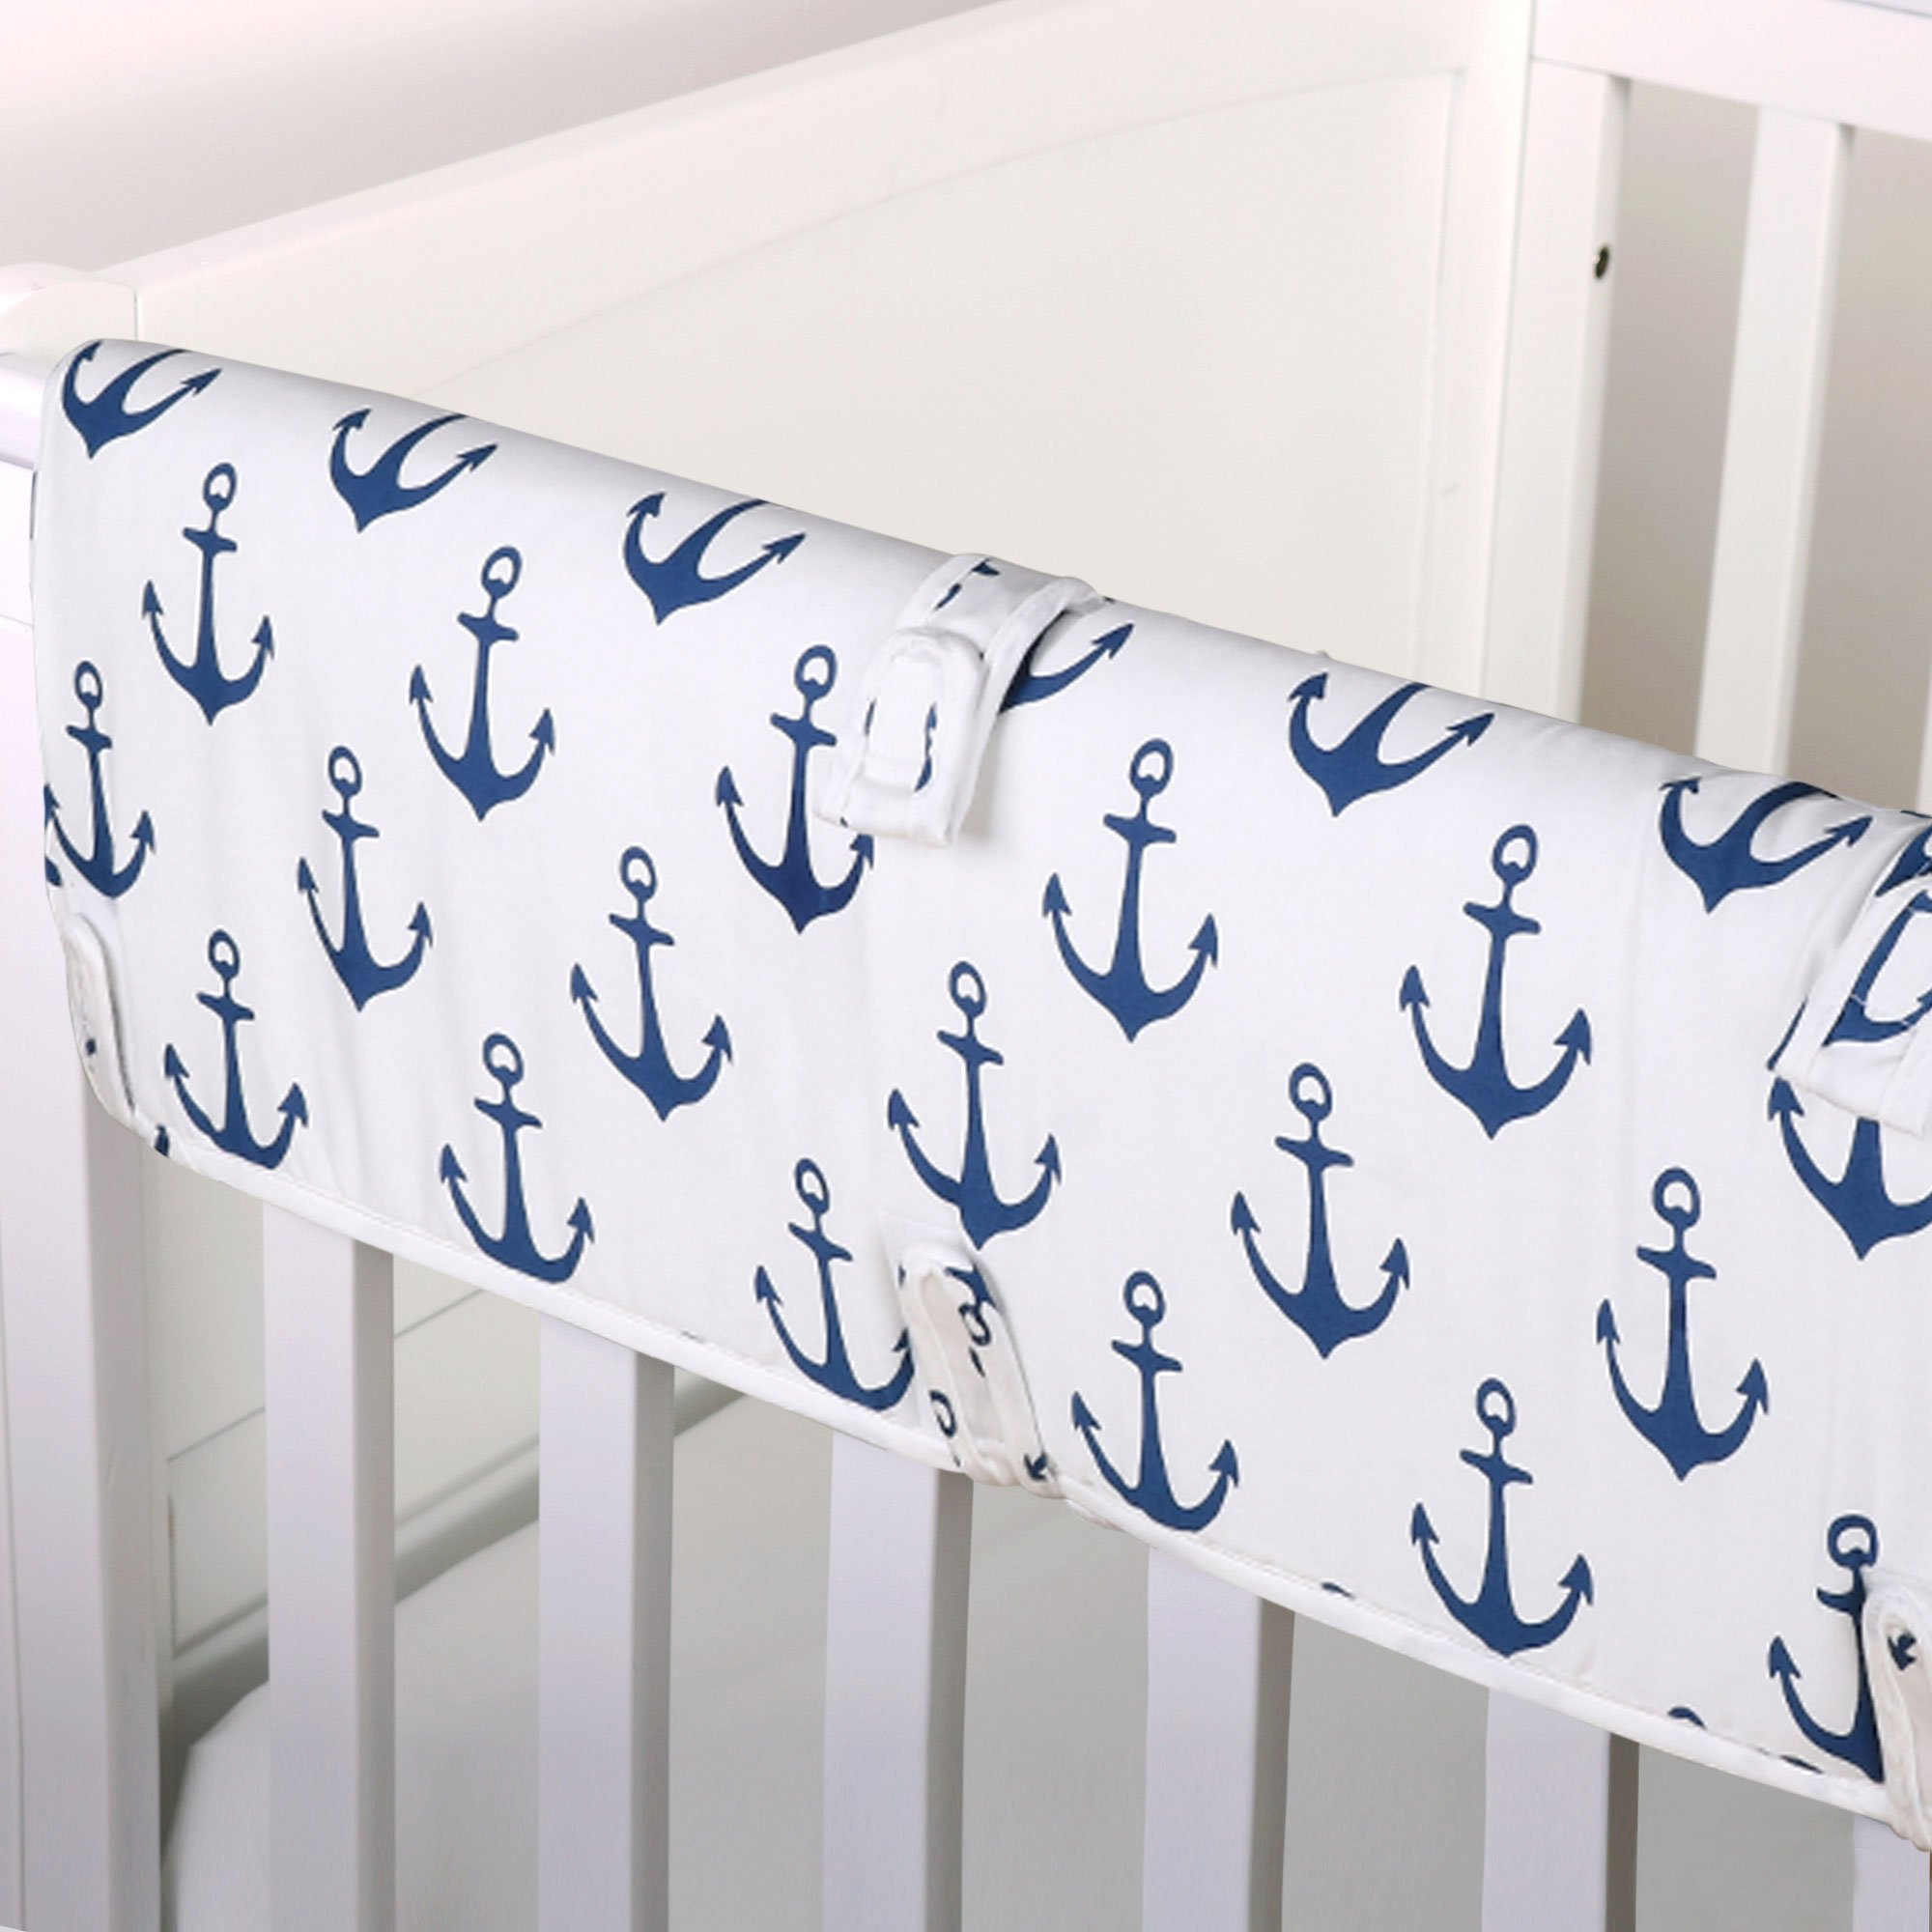 Navy Blue and White Nautical Cotton Padded Crib Rail Guard by The Peanut Shell by The Peanut Shell